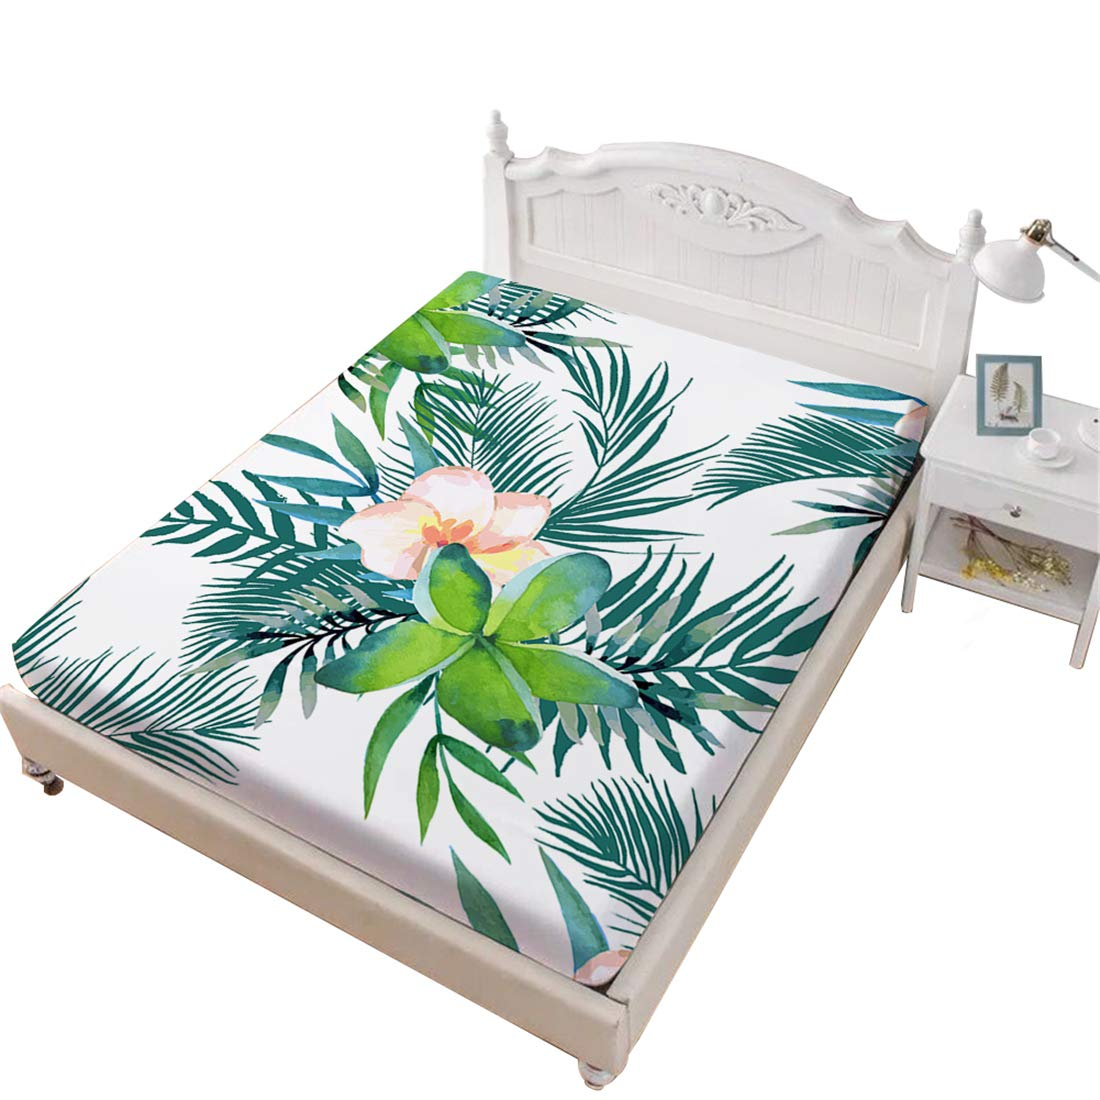 Oliven Fitted Sheet Twin Size 1 Piece Hawaiian Floral Printed Bed Sheet Twin Girls Gift Home Decor Dorm Decor